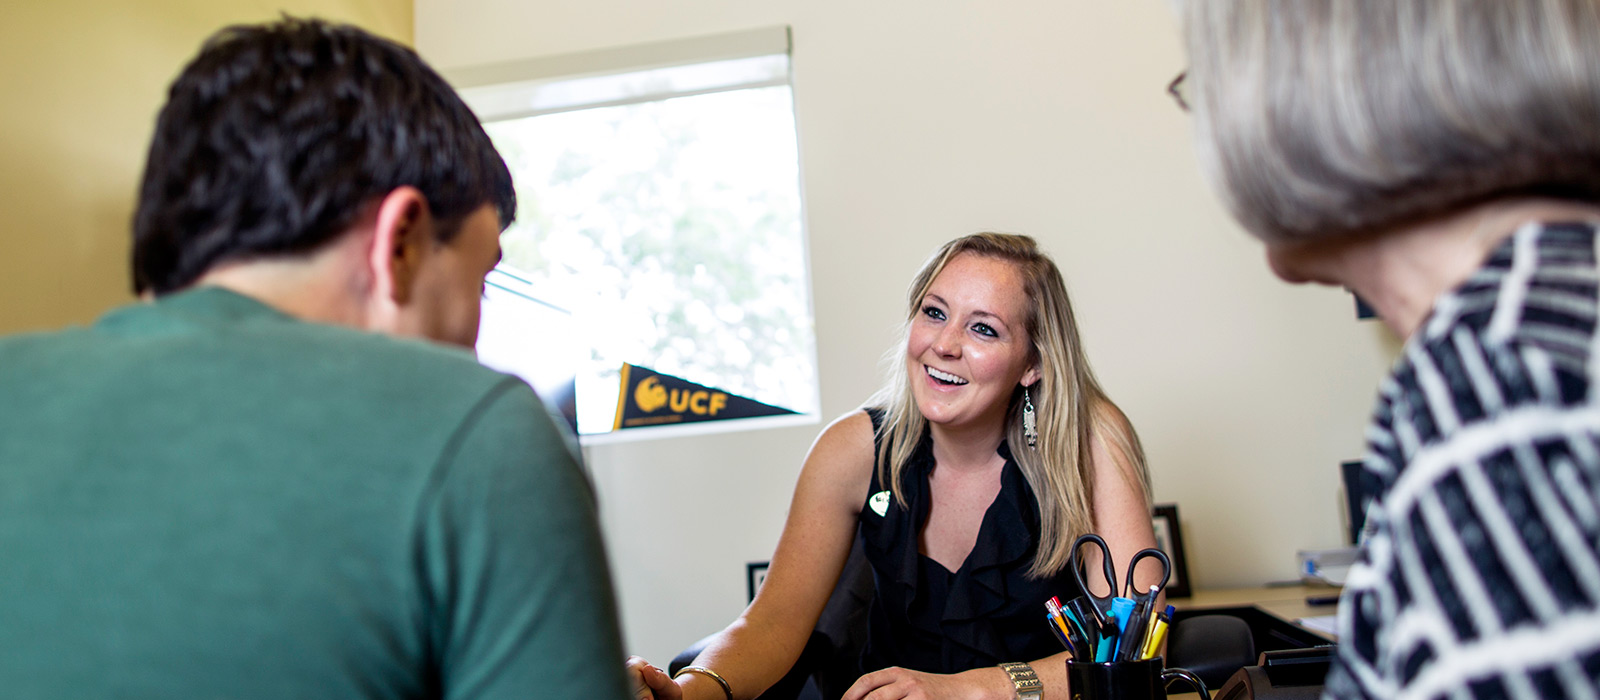 ucf advisor helping new student and parent